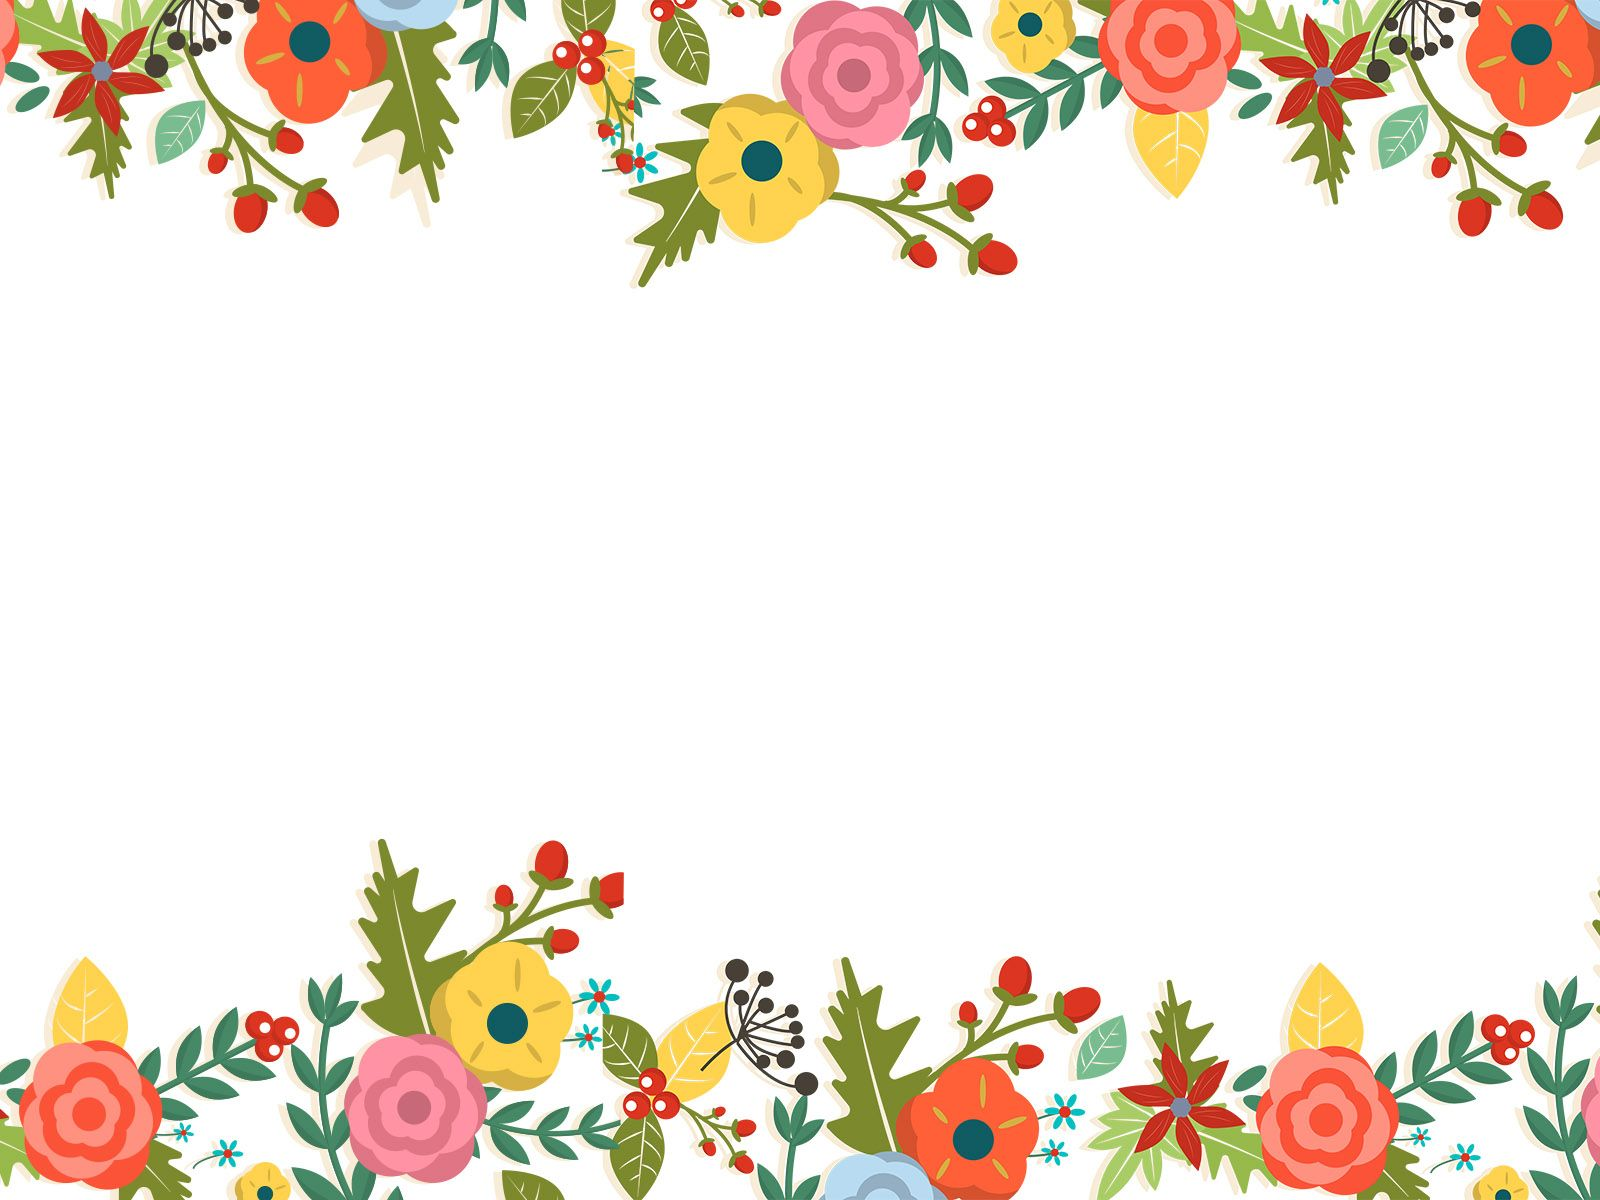 The Exciting Border Frames Powerpoint Templates Free Ppt Backgrounds Wallpaper Powerpoint Background For Powerpoint Presentation Cute Powerpoint Templates